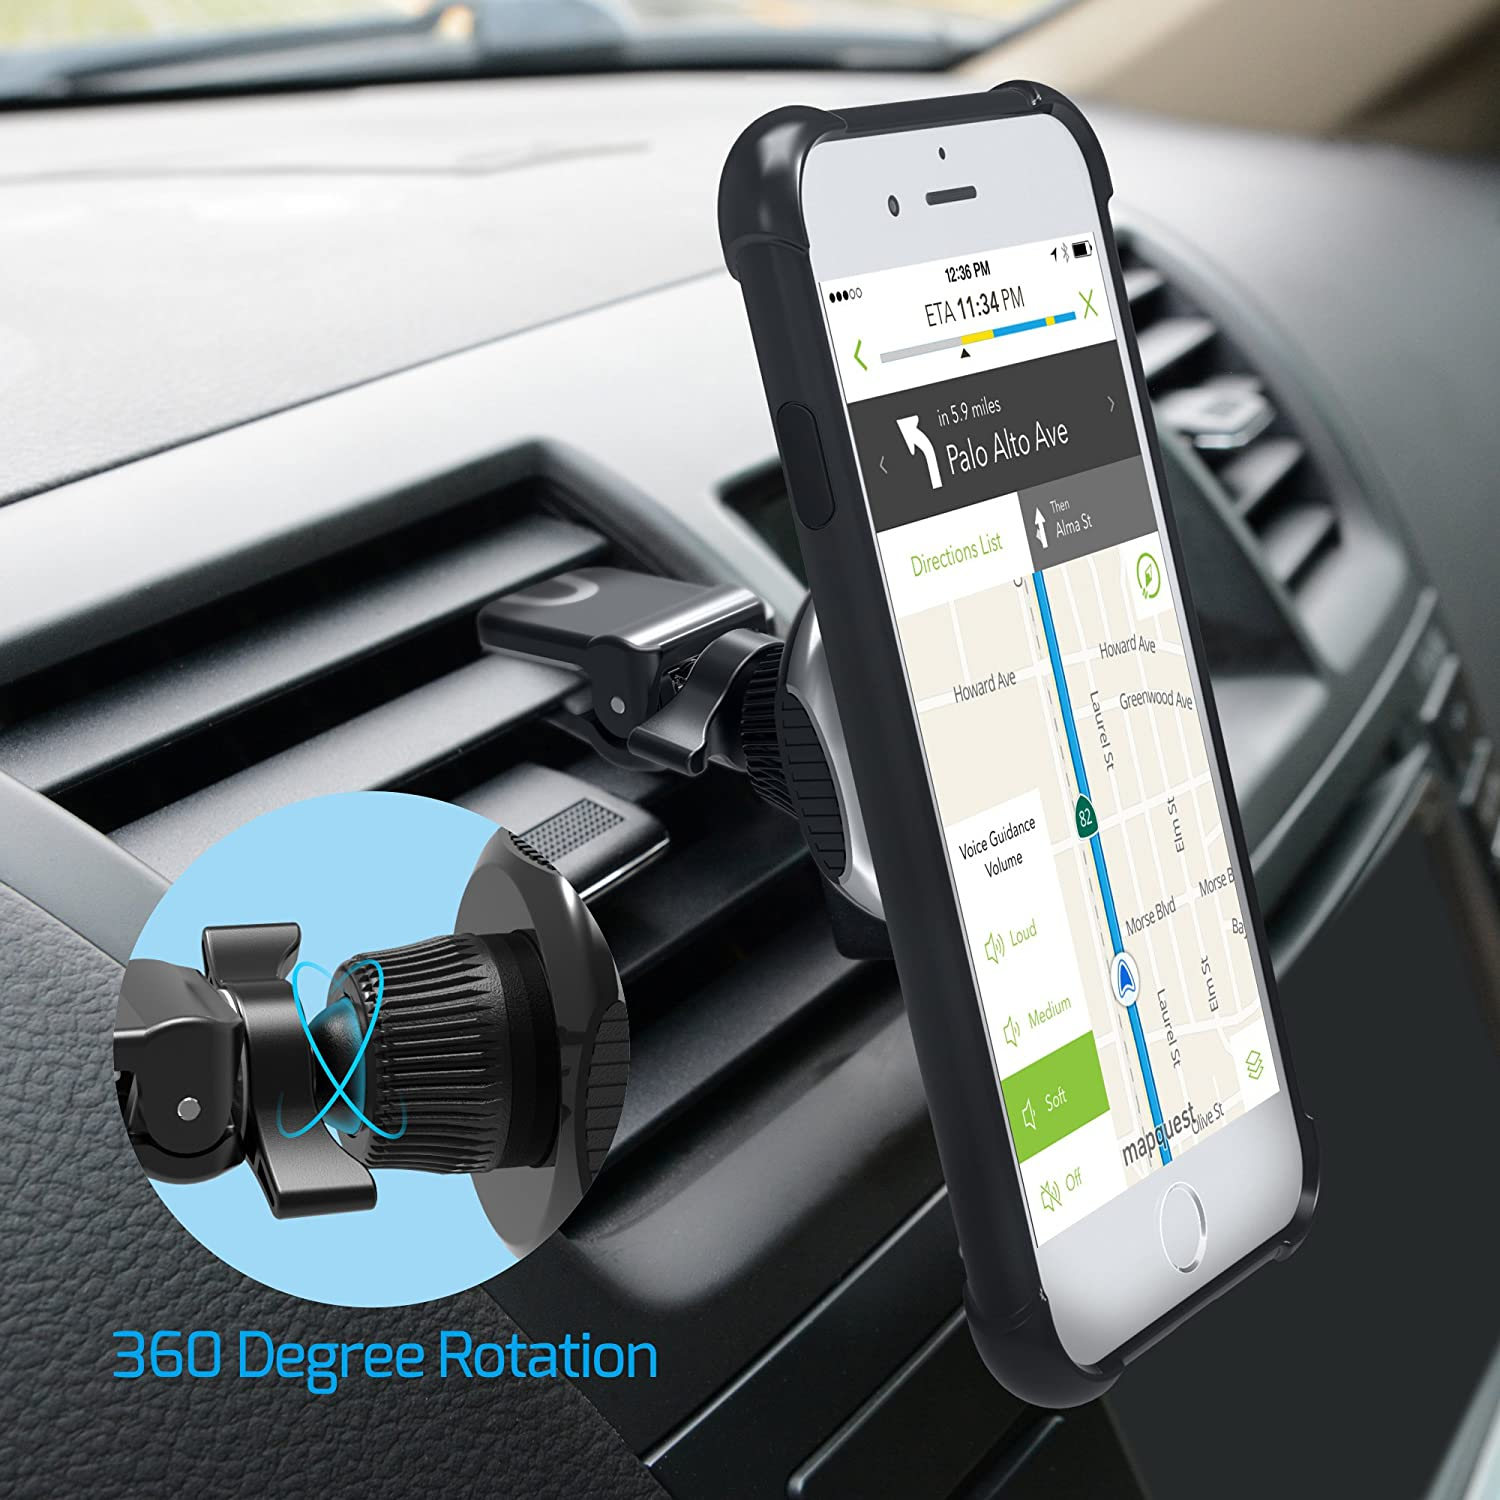 Universal Car Air Vent Mount Cradle Holder for Tablet Mobile Phone Cellphone ELM